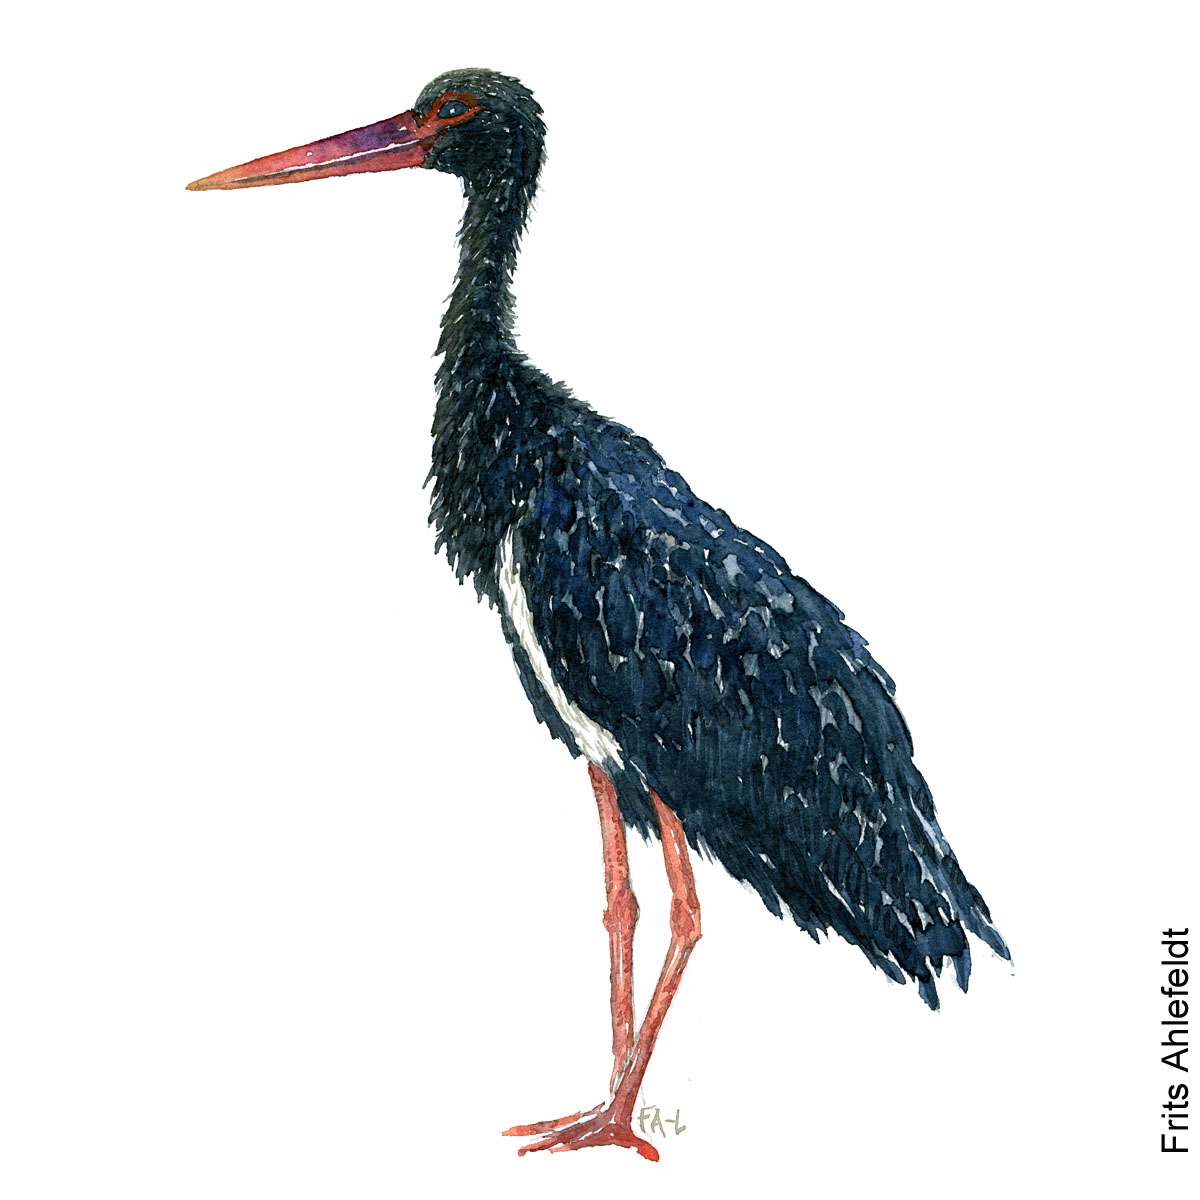 Black stork Bird watercolor illustration handmade by Frits Ahlefeldt